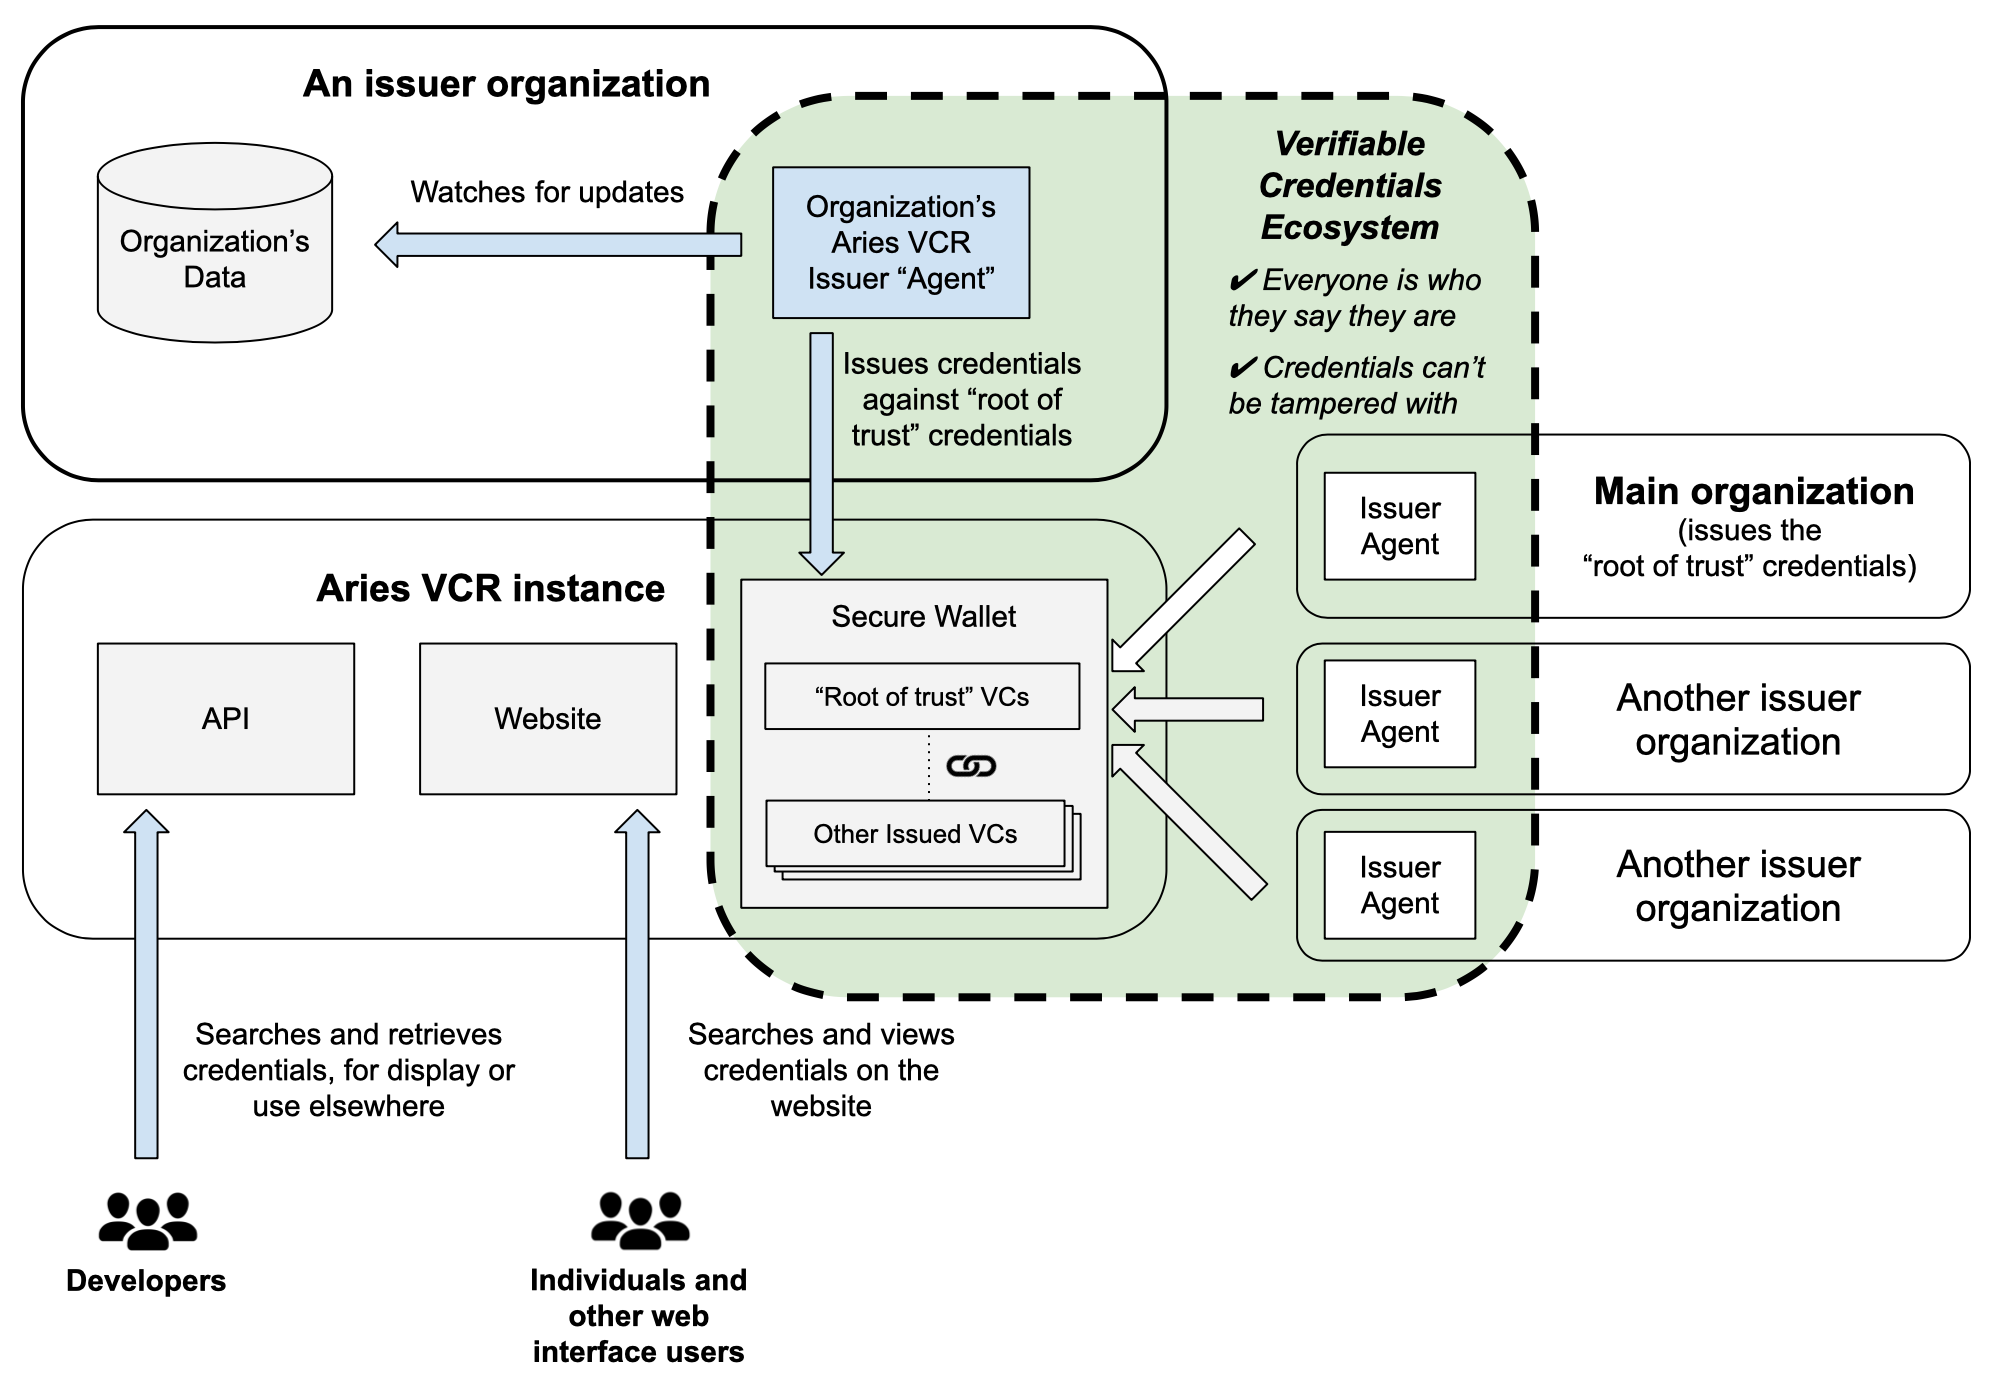 A diagram showing the relationship between issuing organizations and Aries VCR, including ways to consume Aries VCR data via the website and API